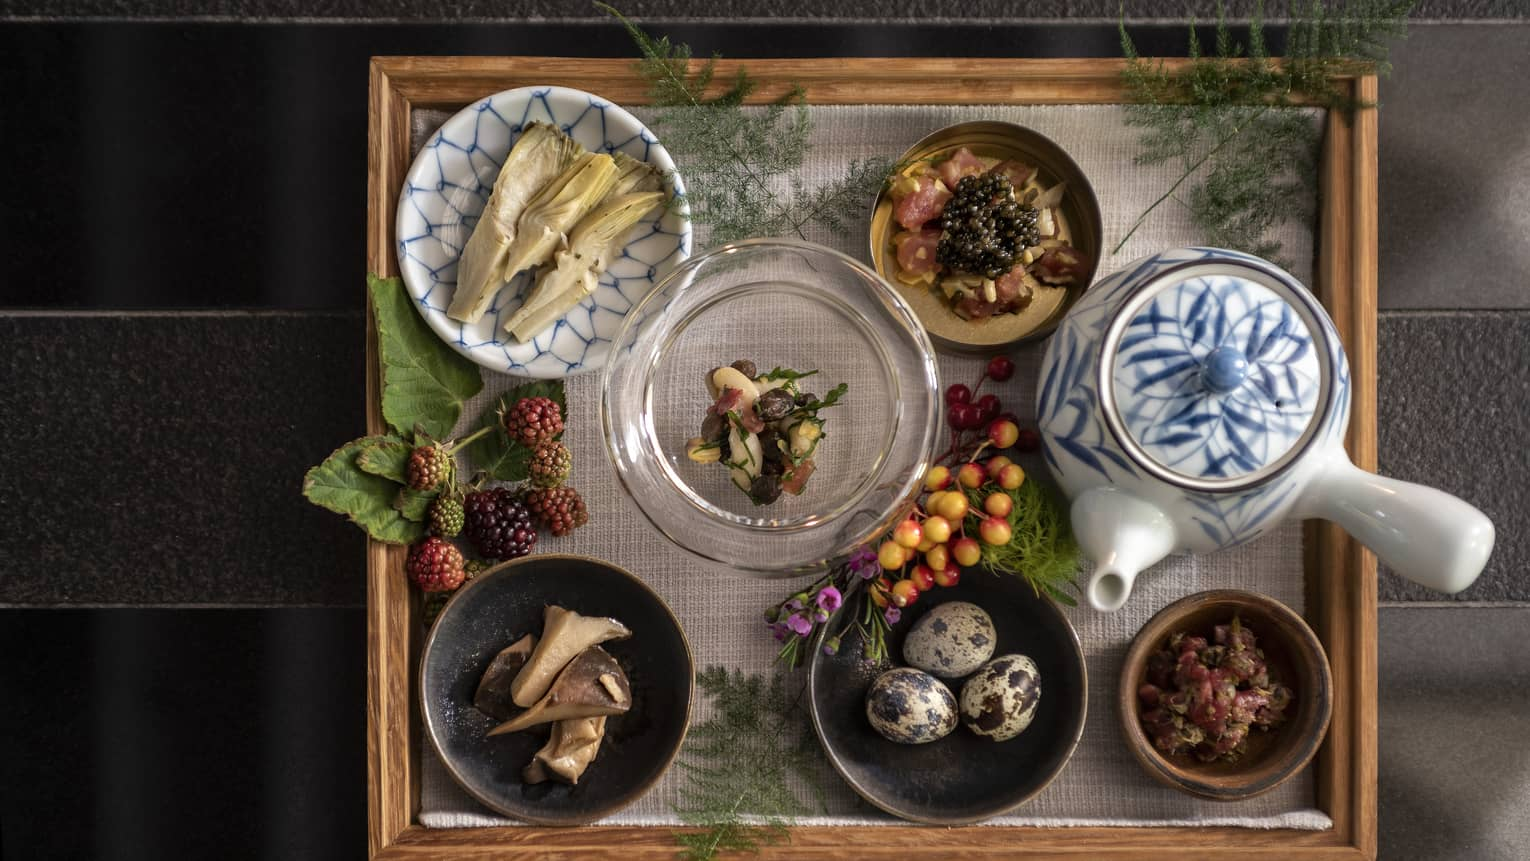 Aerial view of Sintoho wood dining tray, small dishes with quail eggs, artichokes, caviar, tea pot